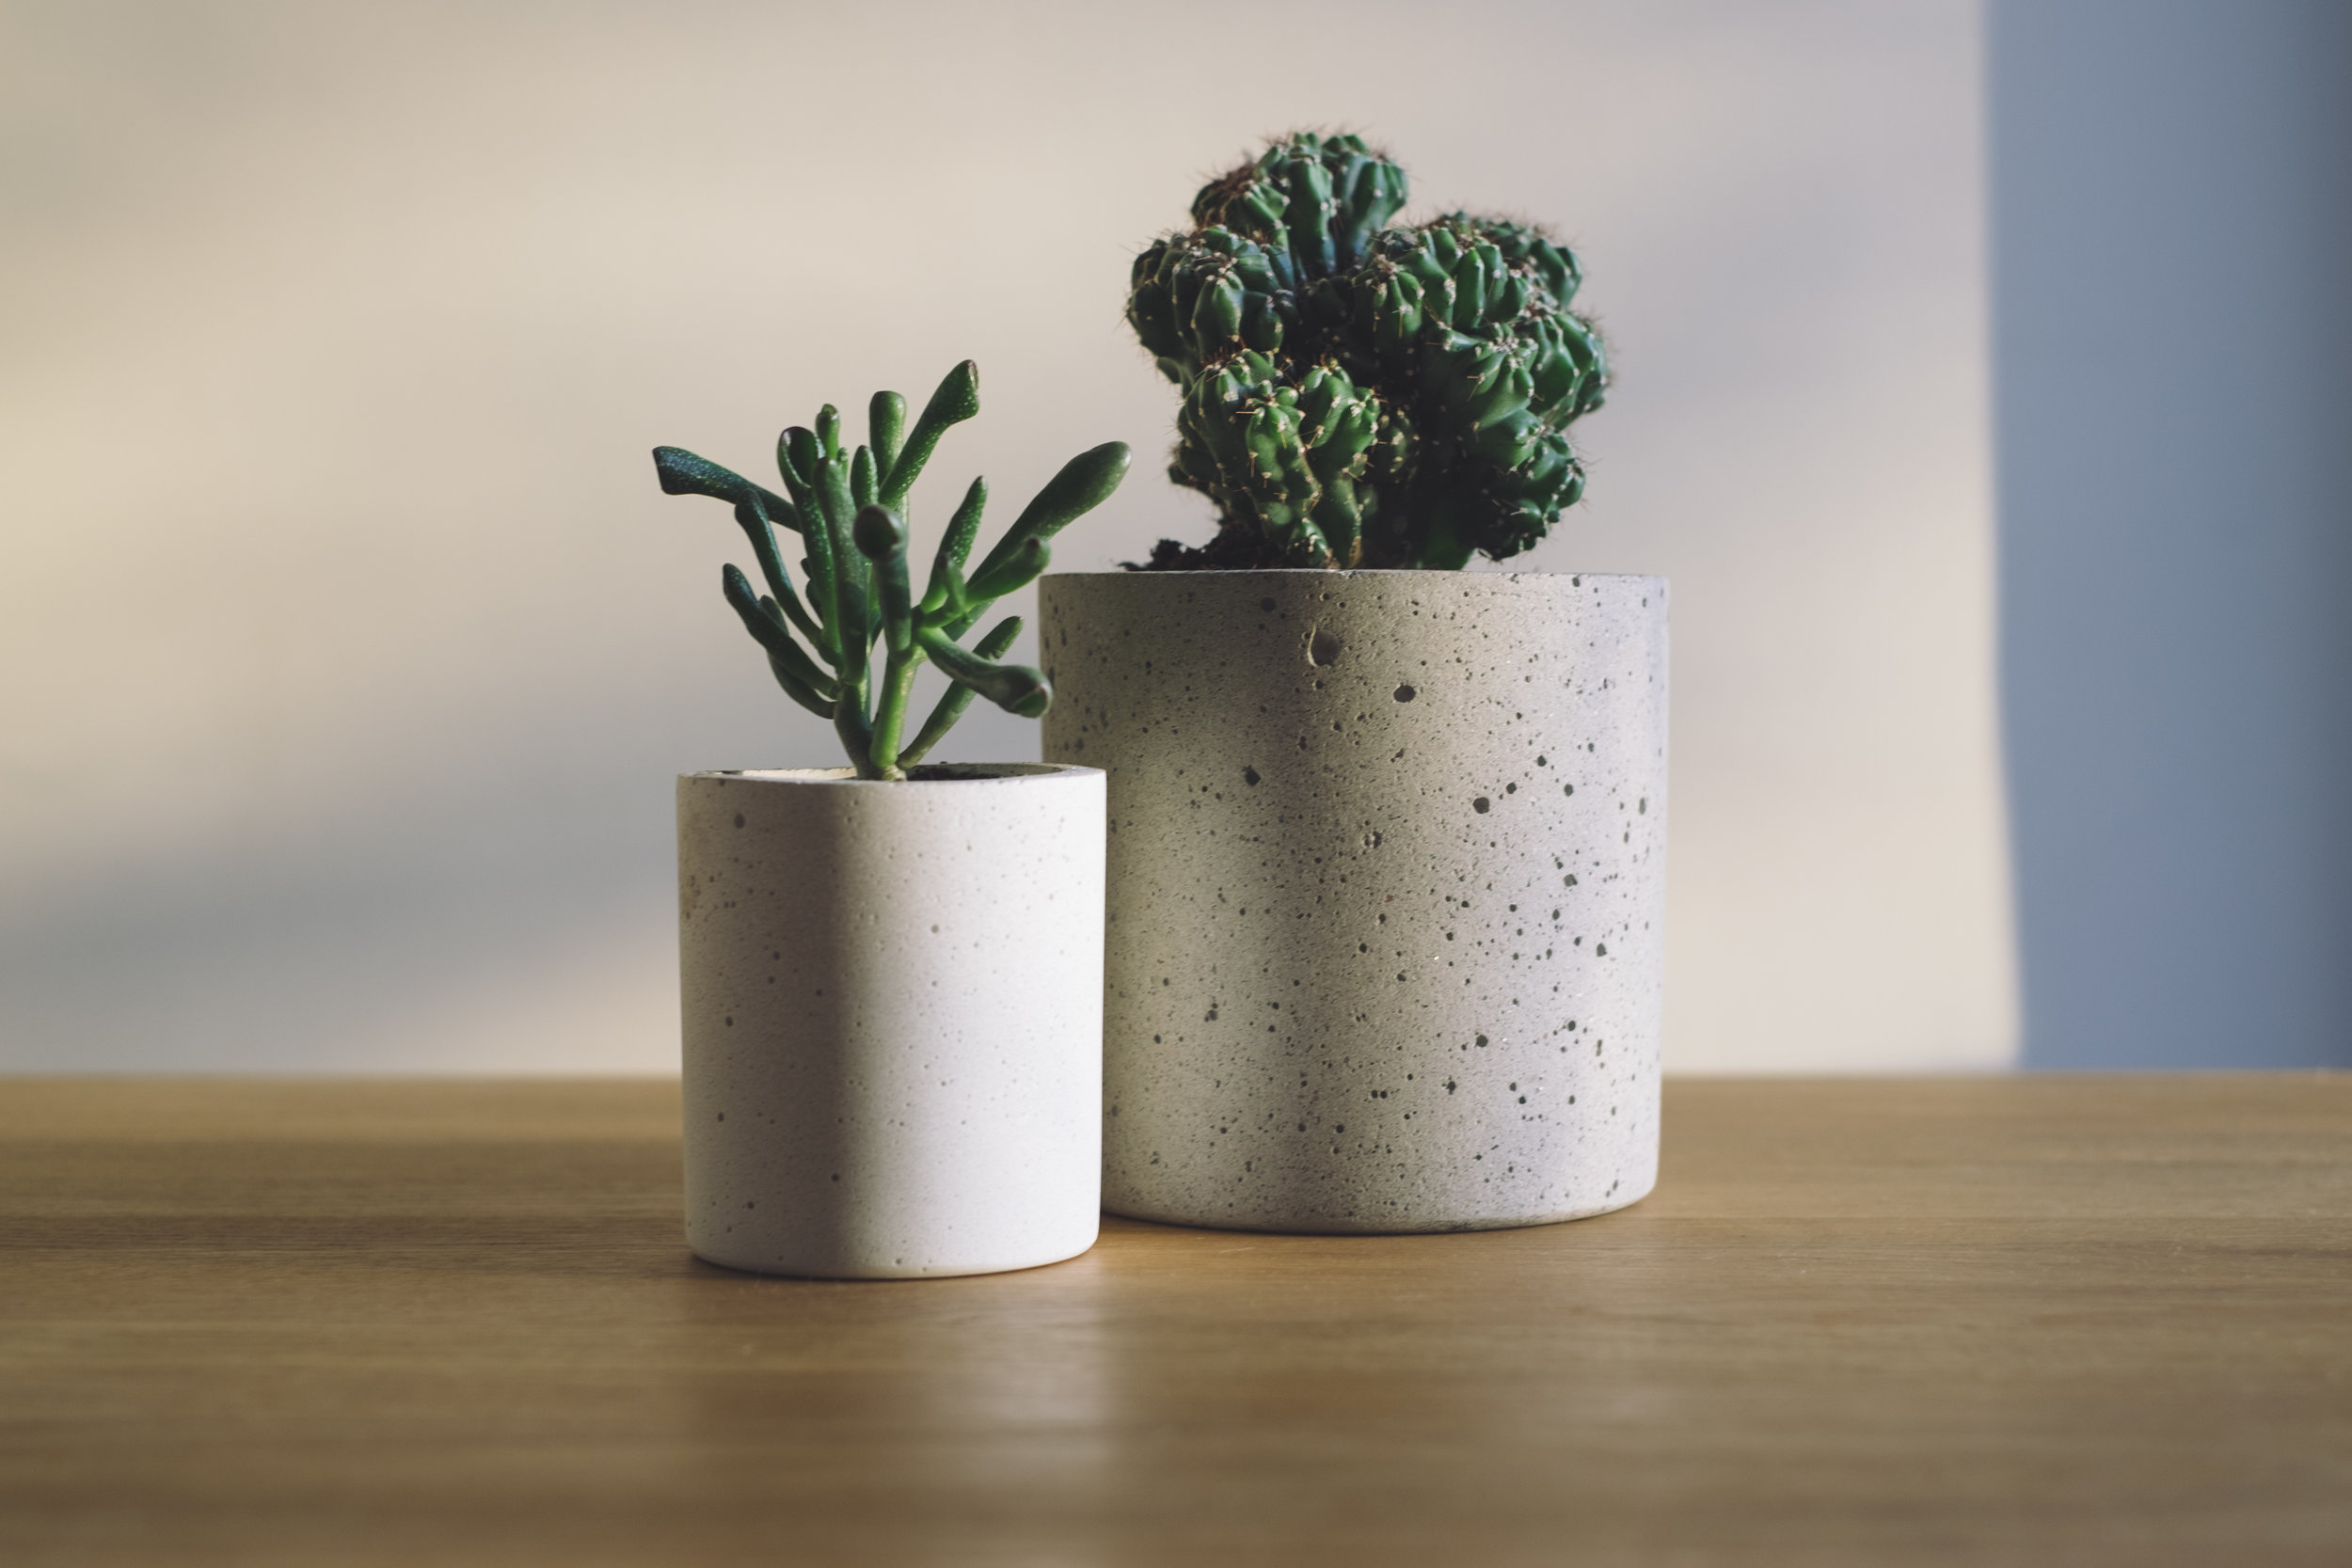 5 Tips to Keep Your House Plants Healthy